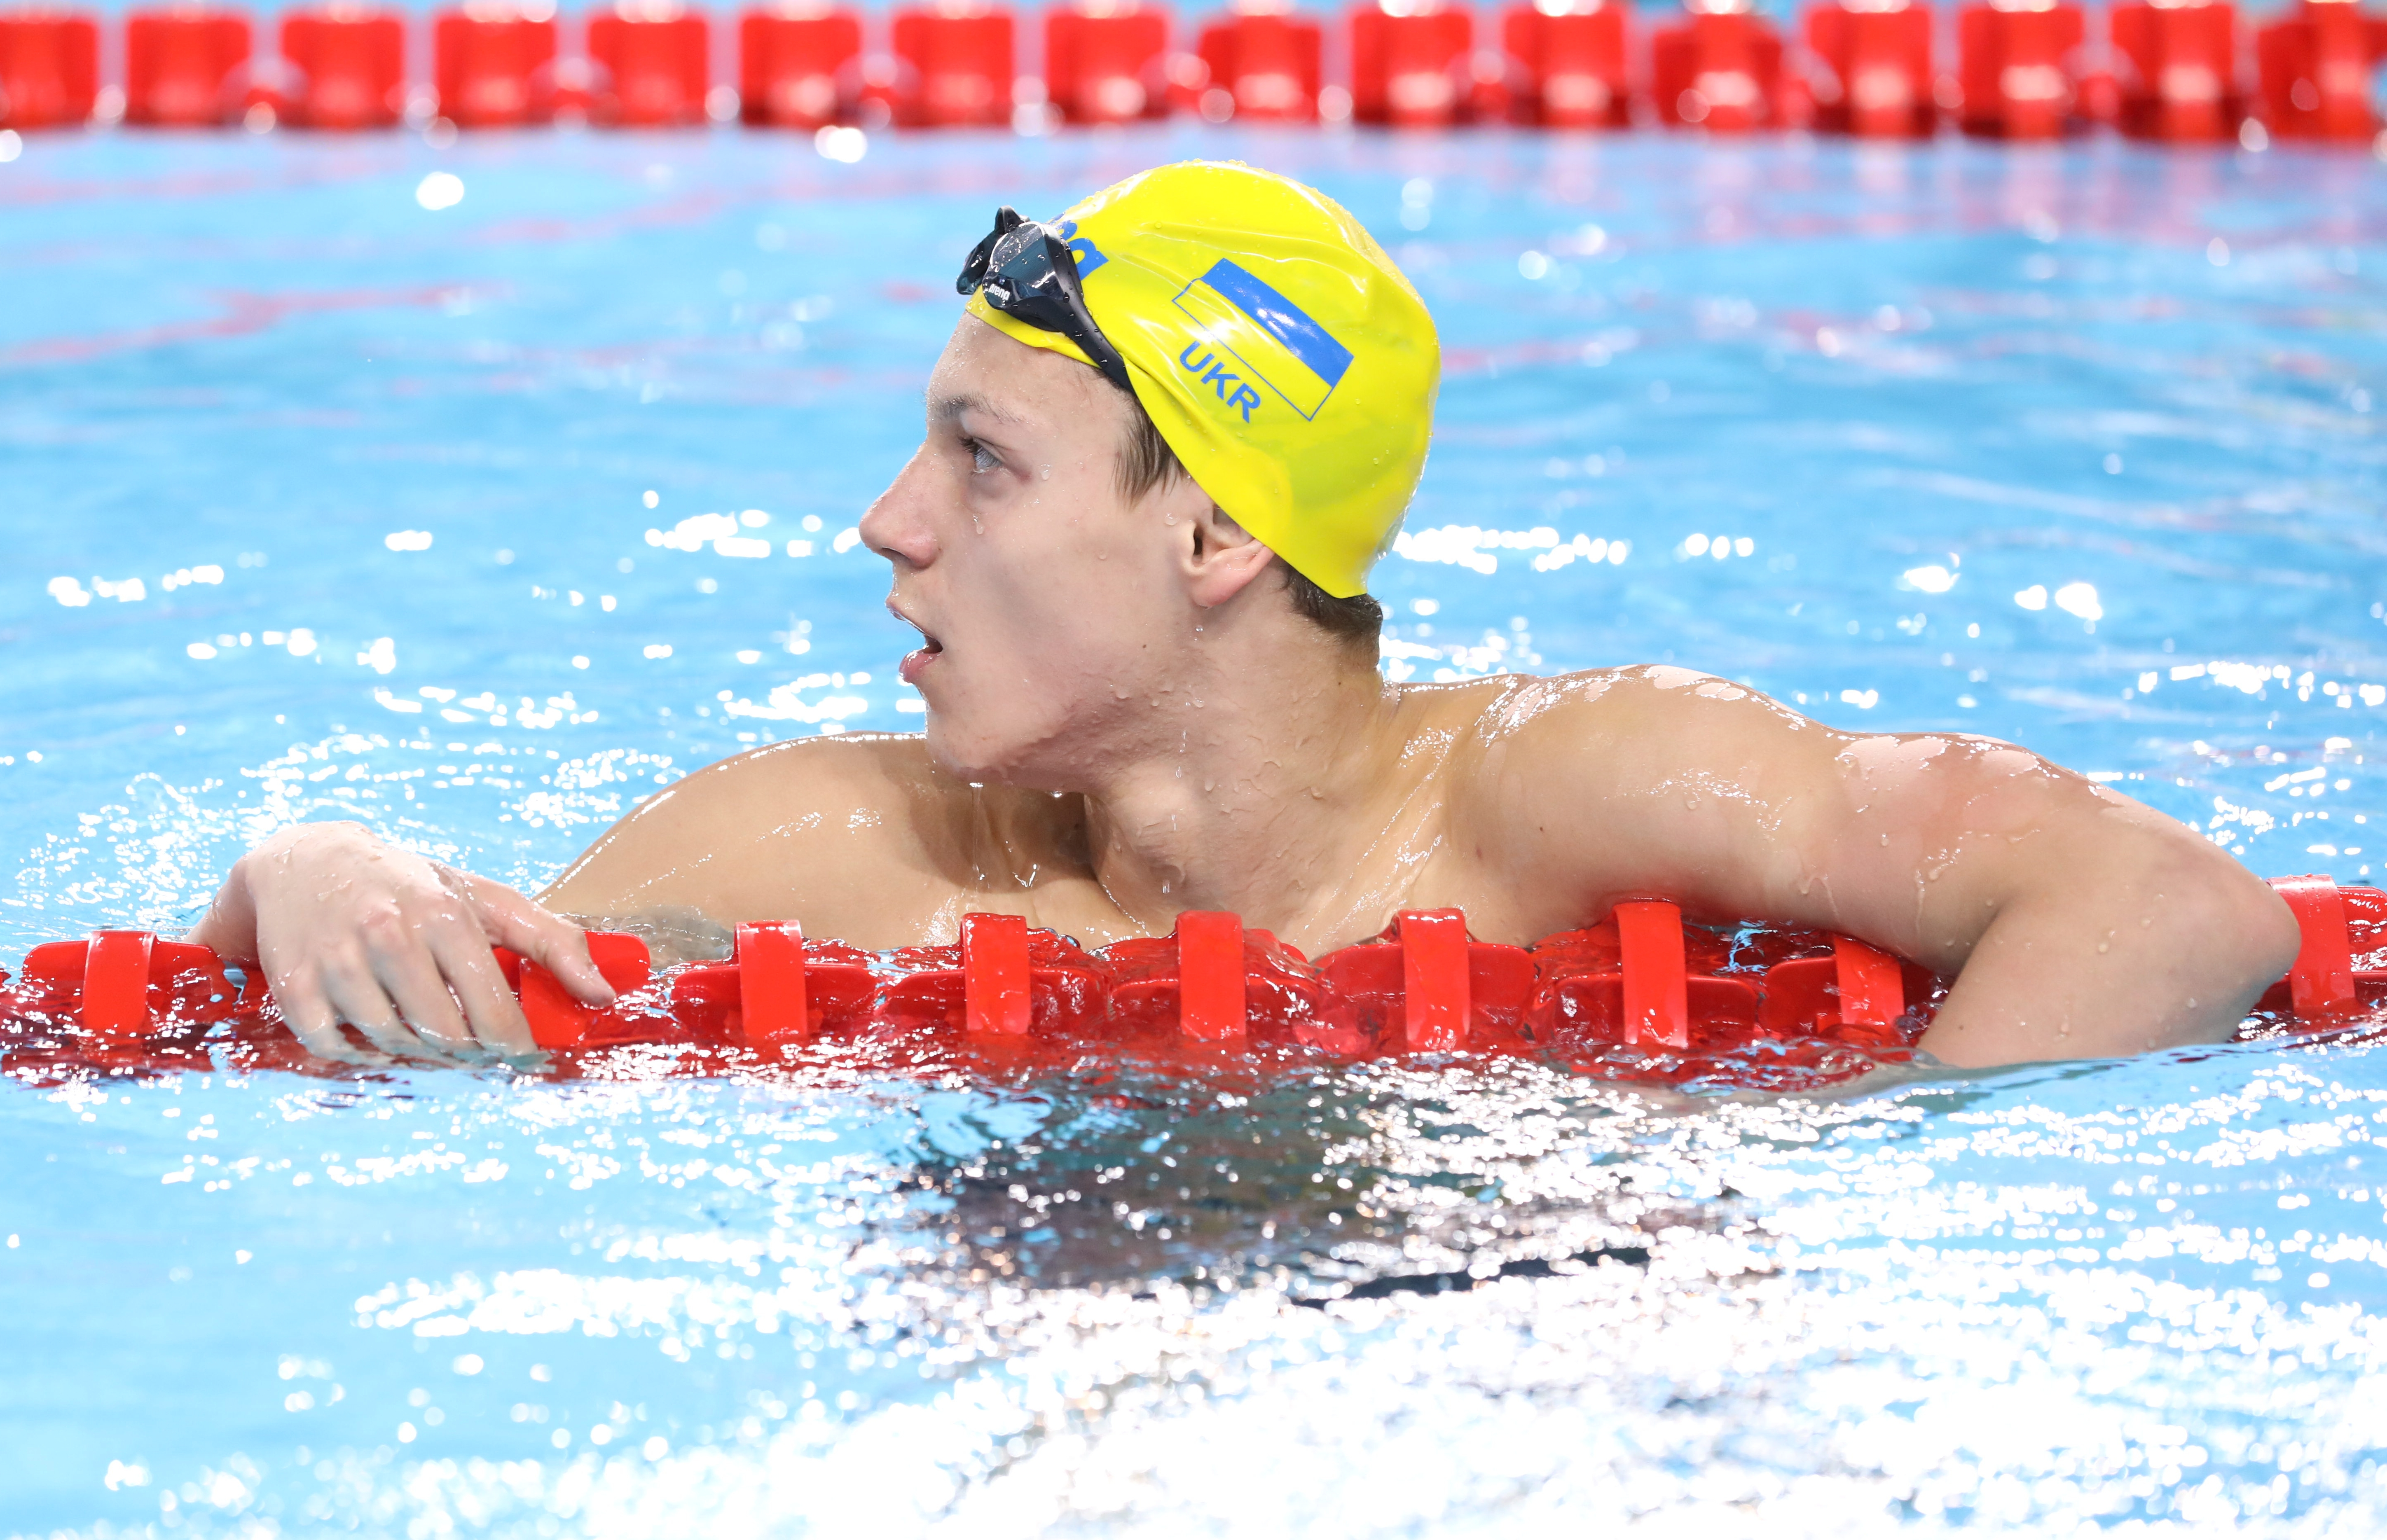 2018-10-10 Swimming Boys' 50m Butterfly Semifinal 2 at 2018 Summer Youth Olympics by Sandro Halank–002.jpg